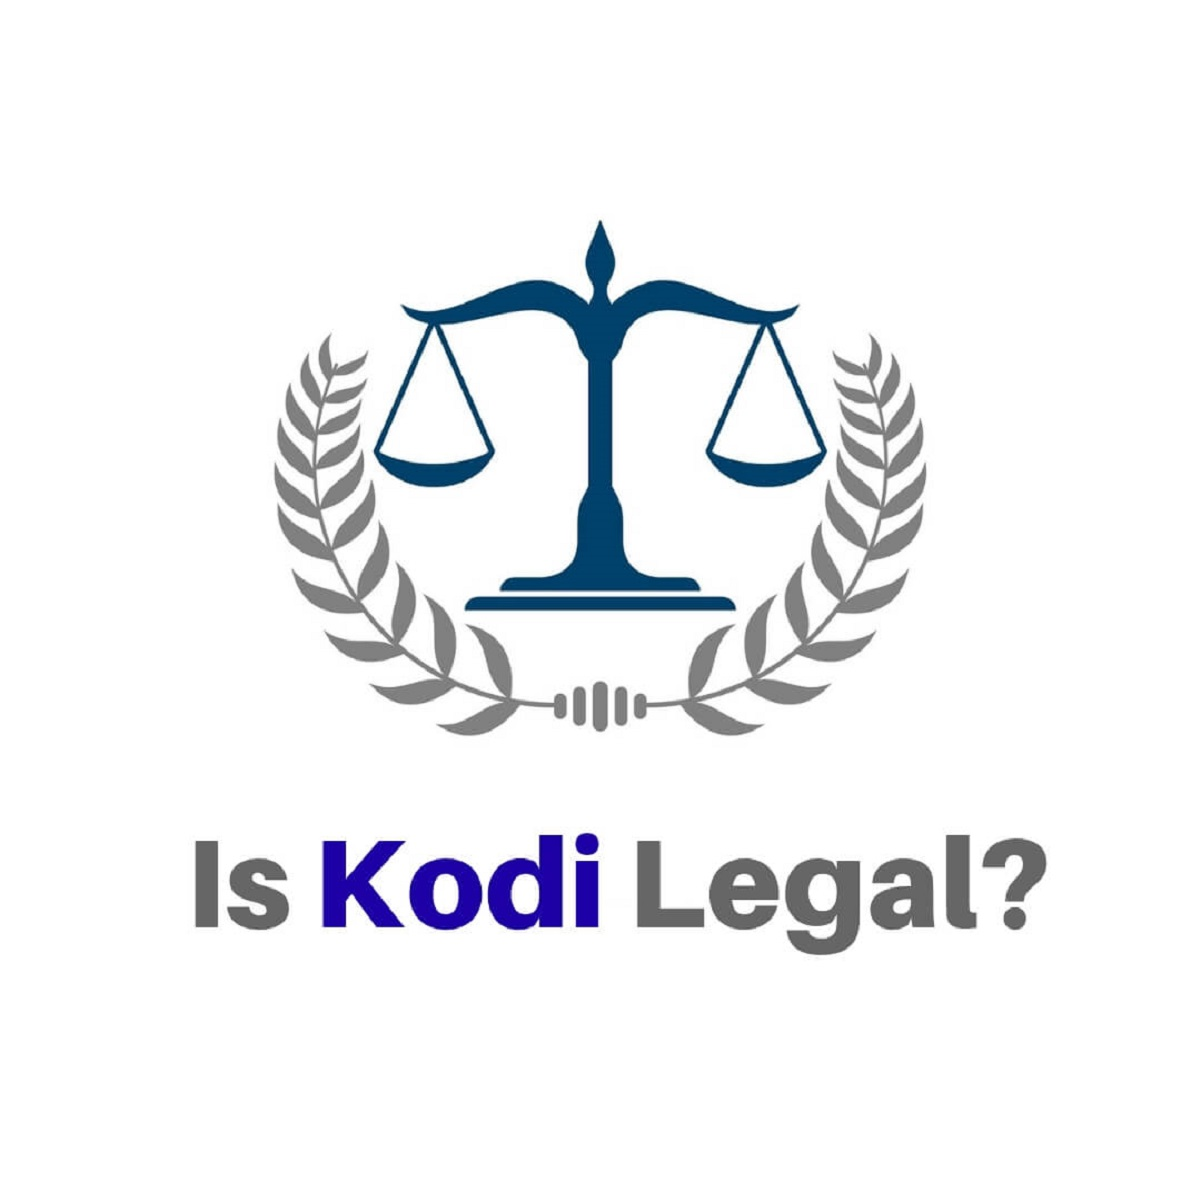 Is Kodi Legal and Safe? Truth about Kodi Legality in a 3 Min